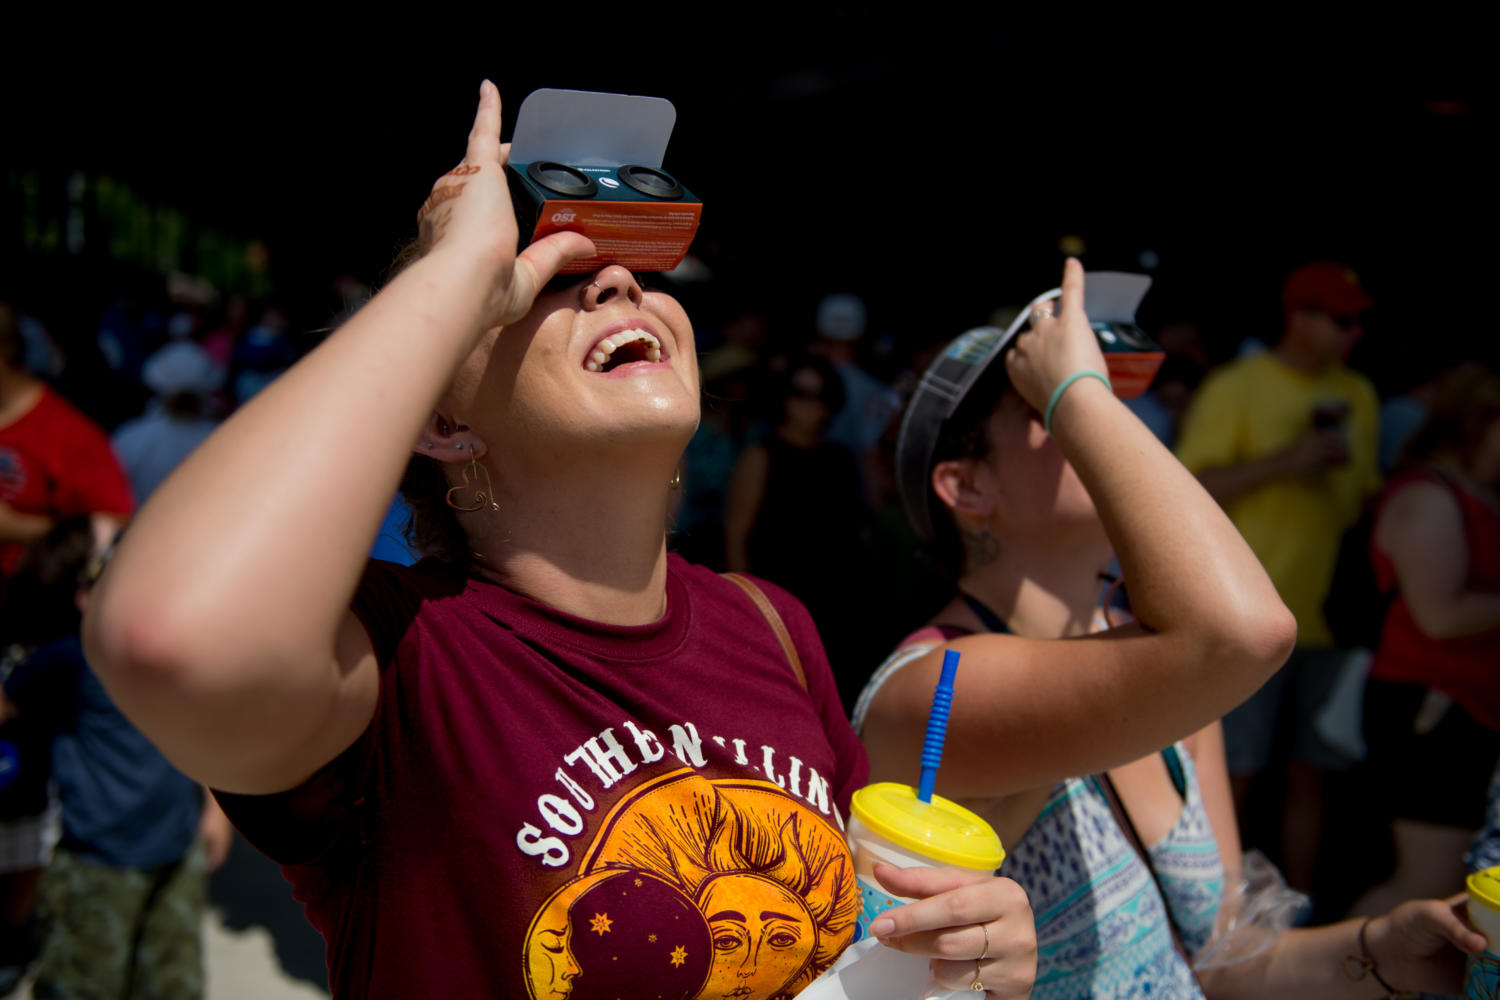 Susan Petrosky, of Springfield, watches the solar eclipse through special eclipse glasses Monday, Aug. 21, 2017, outside Saluki Stadium.